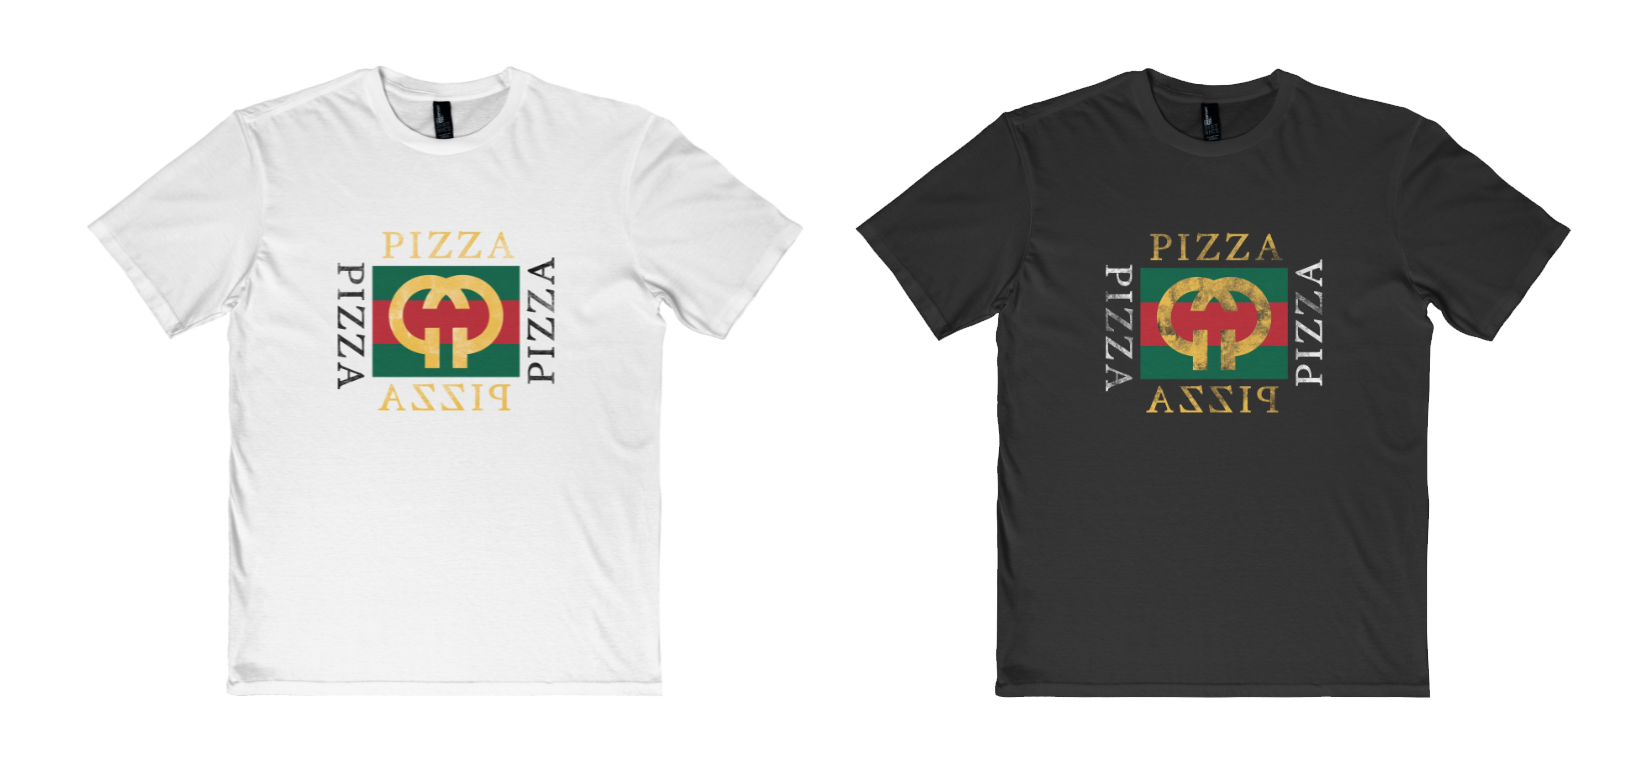 G_pizza_shirts